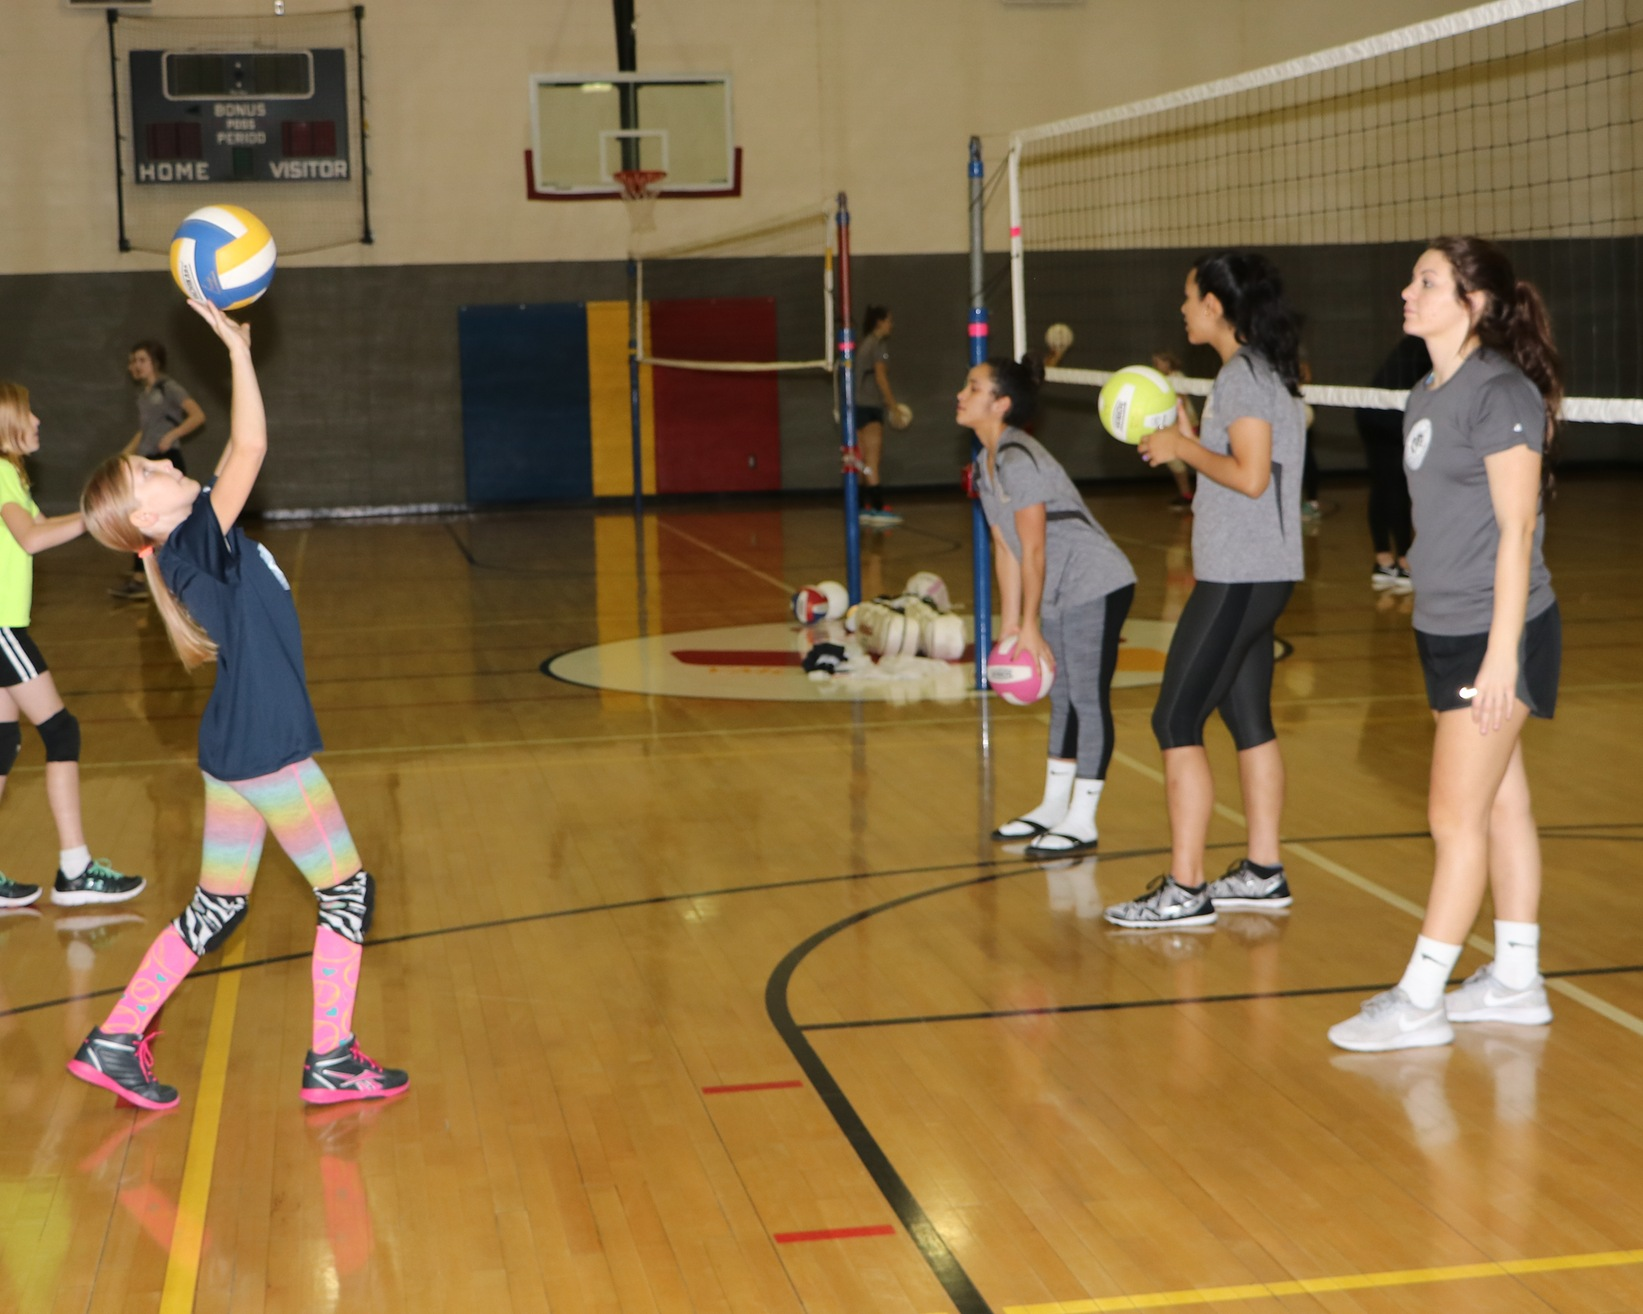 WNCC and YMCA hold camp that begins Monday, June 11